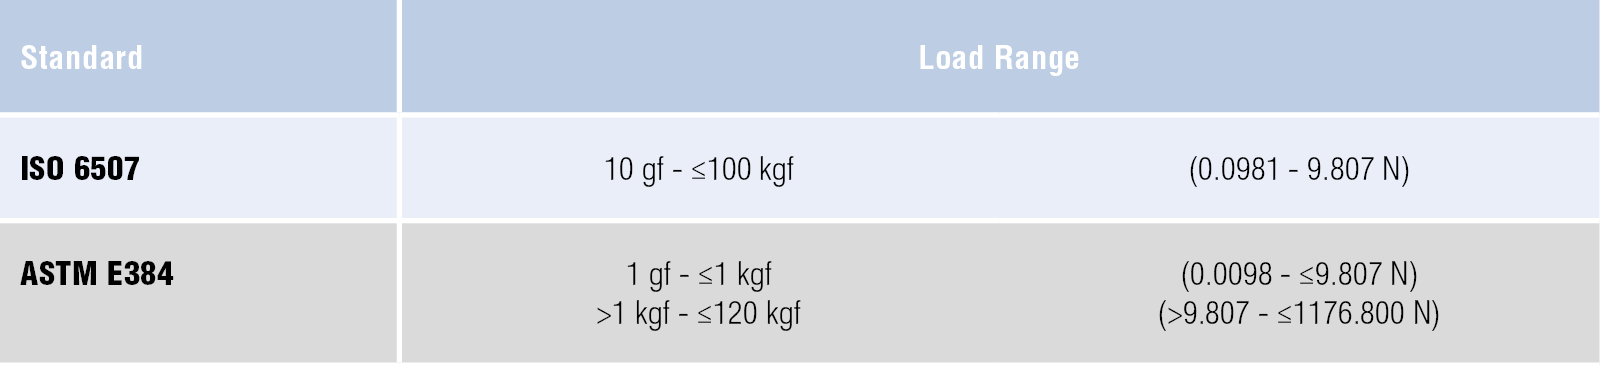 Vickers Loads table